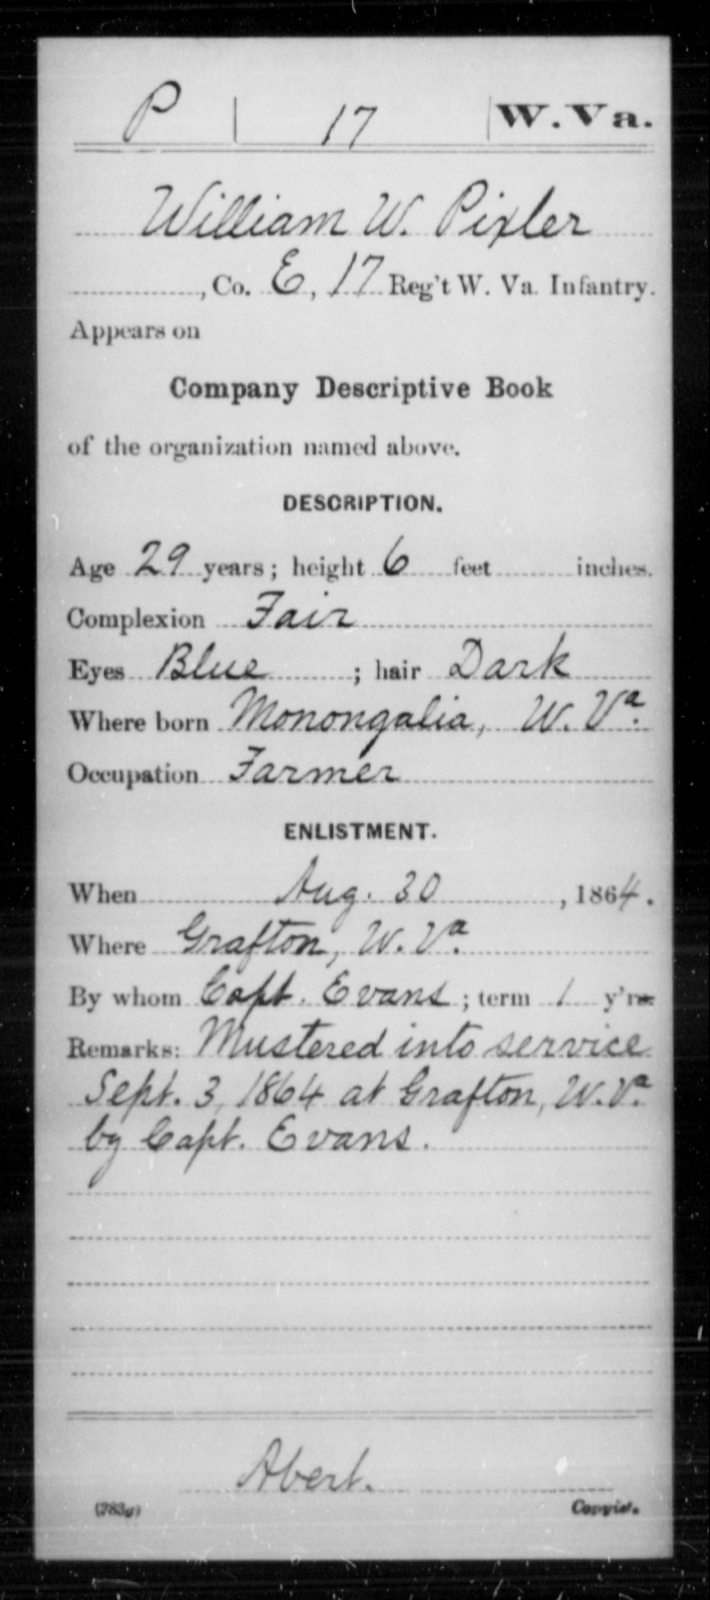 Pixler, William W - Age 29, Year: 1864 - Miscellaneous Card Abstracts of Records - West Virginia